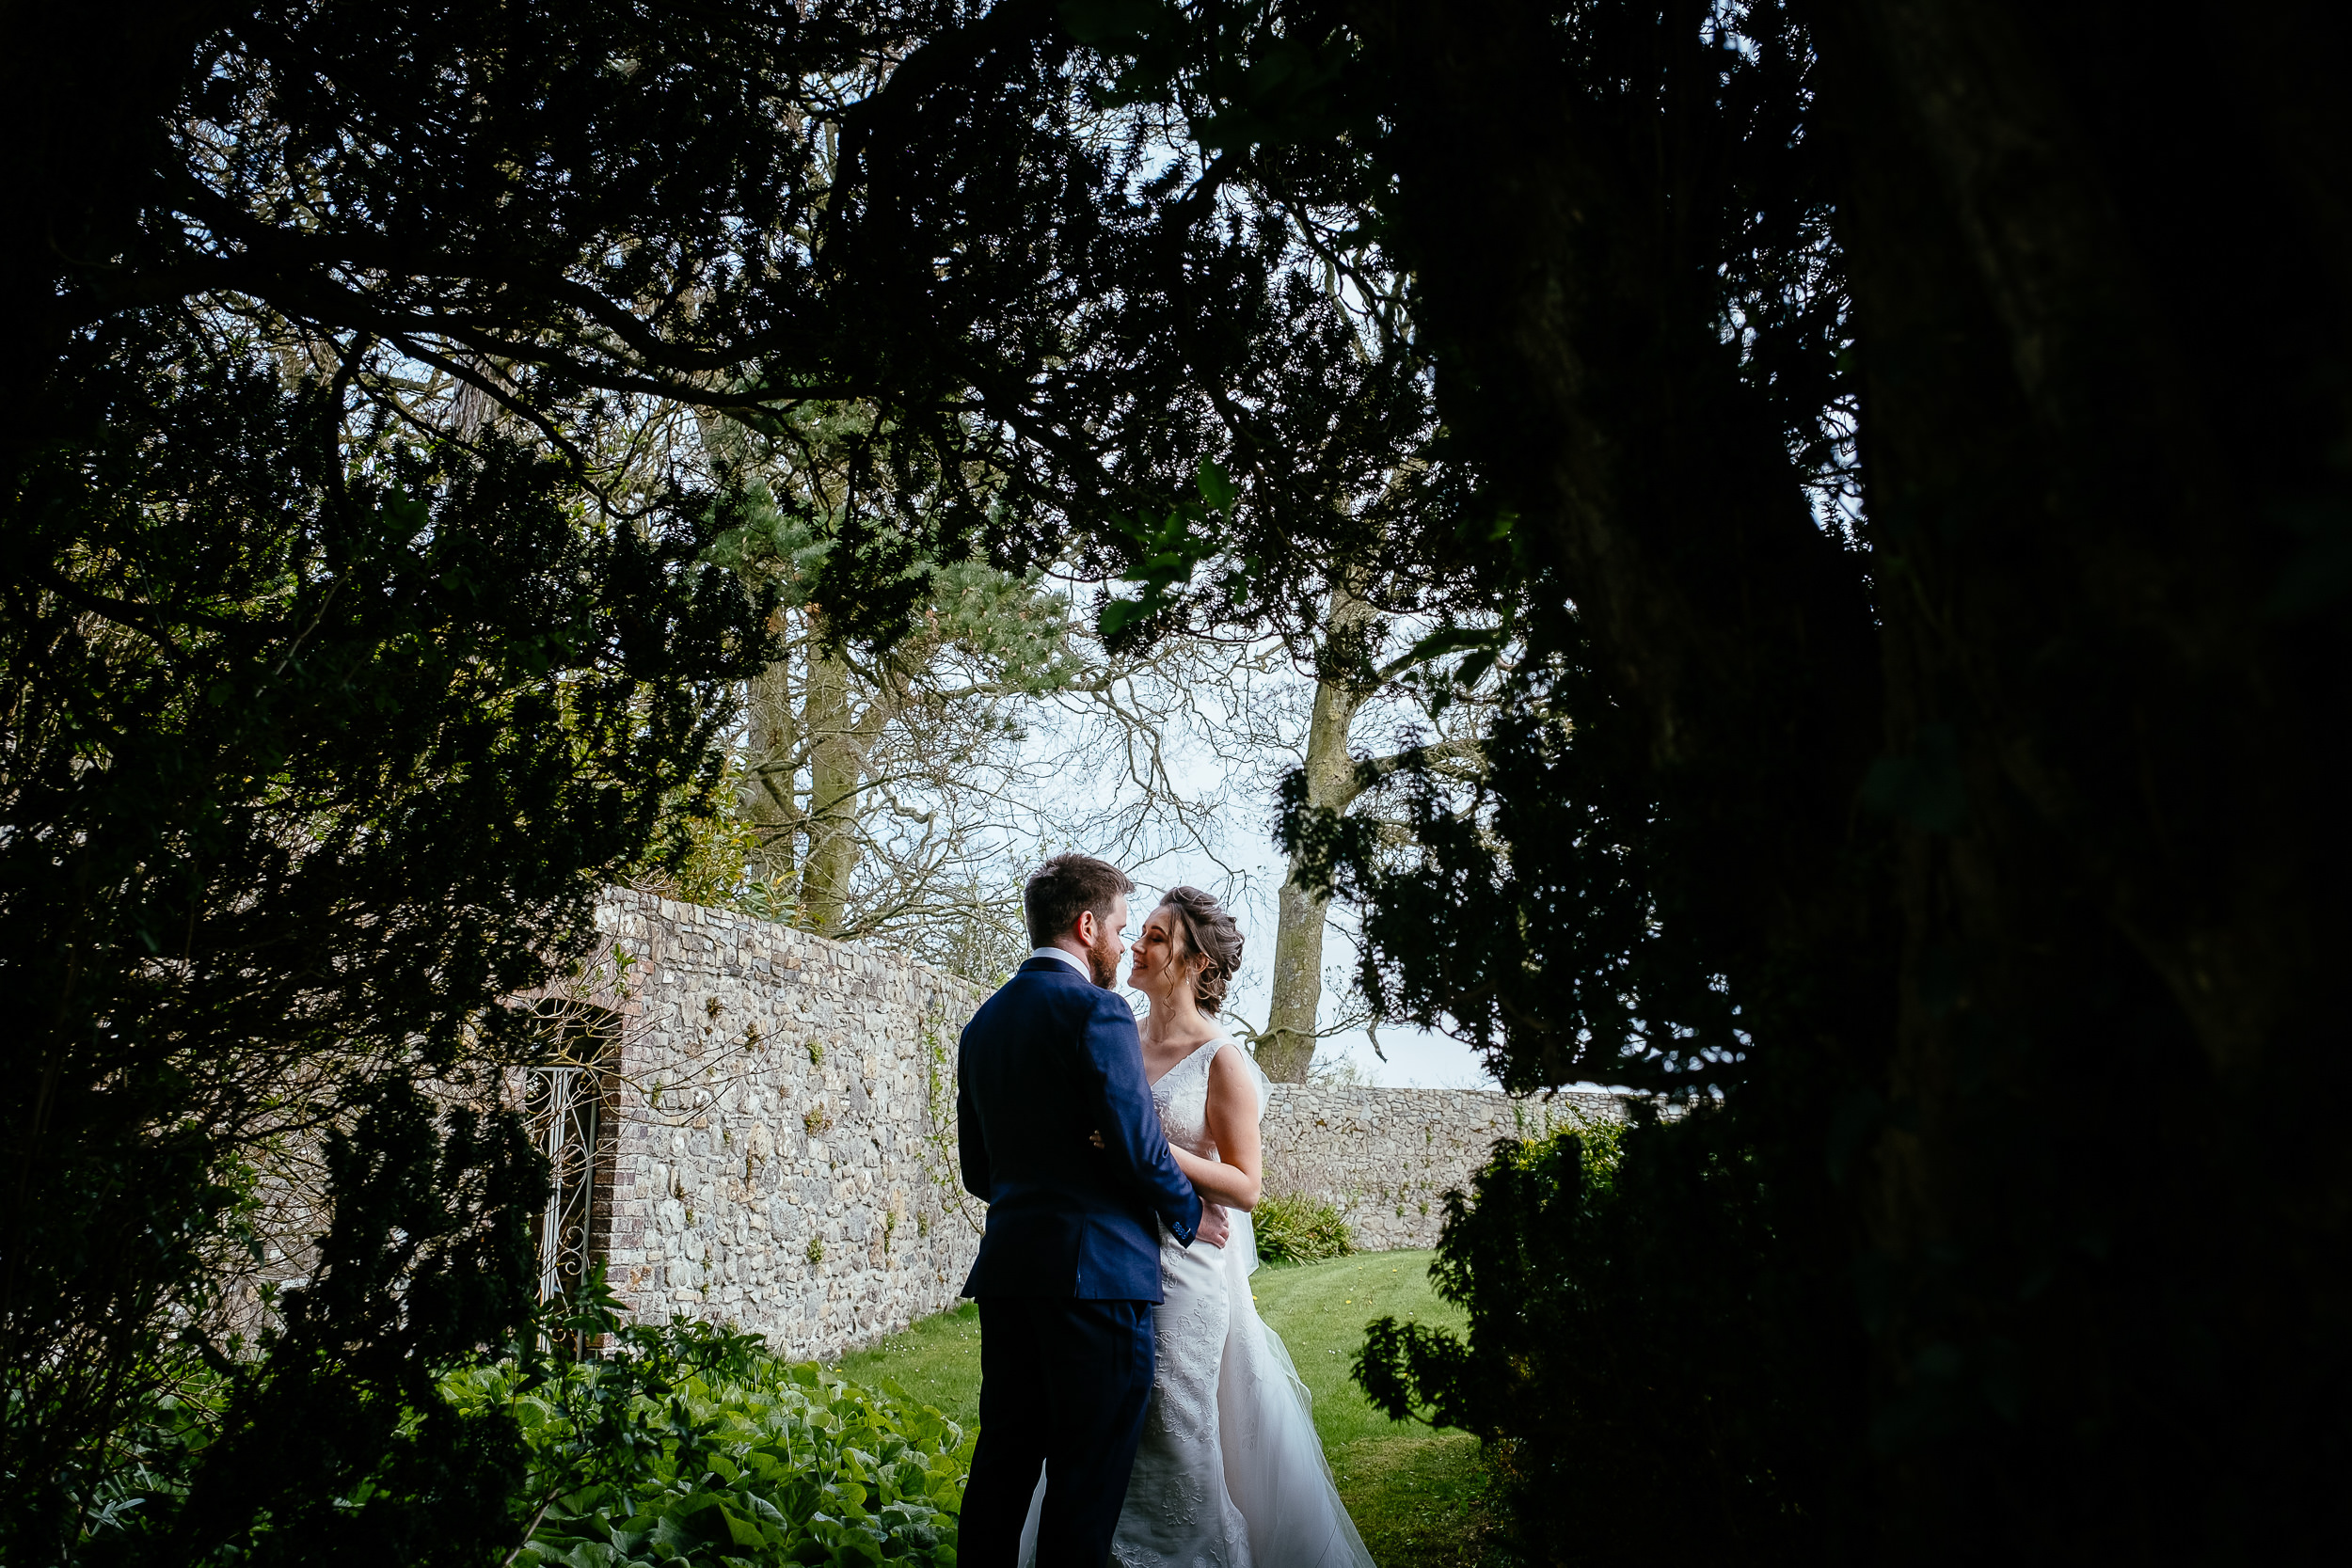 bride and groom kissing through a gap in trees at Ballymagarvey village meath